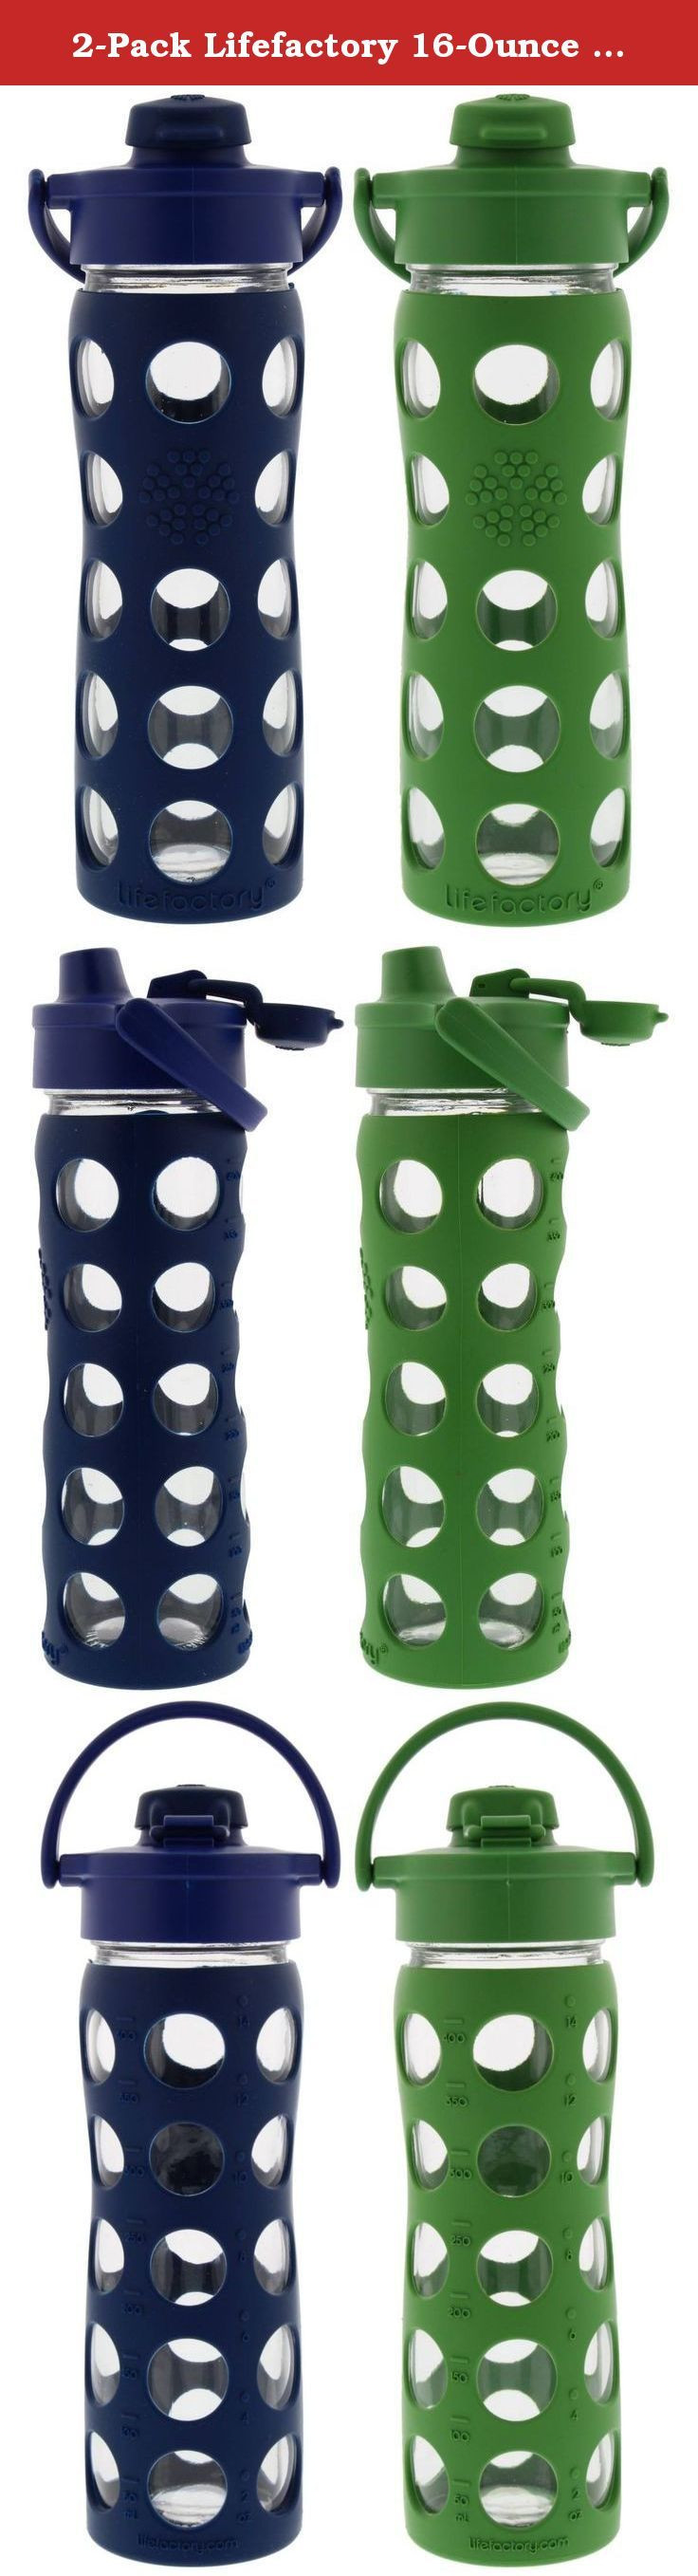 2-Pack Lifefactory 16-Ounce Flip Cap Beverage Bottles (Midnight and Grass). Performance meets Purity. The performance of the Flip Top Cap meets the purity of glass. The Flip Top Cap collection offers easy on-the-go drinking from the narrow mouth spout with the convenience of wide mouth access. 16 oz size is a bit slimmer and fits well in most car cup holders making it a perfect road trip companion. BPA free. Dishwasher safe. Made in the U.S. and Europe.